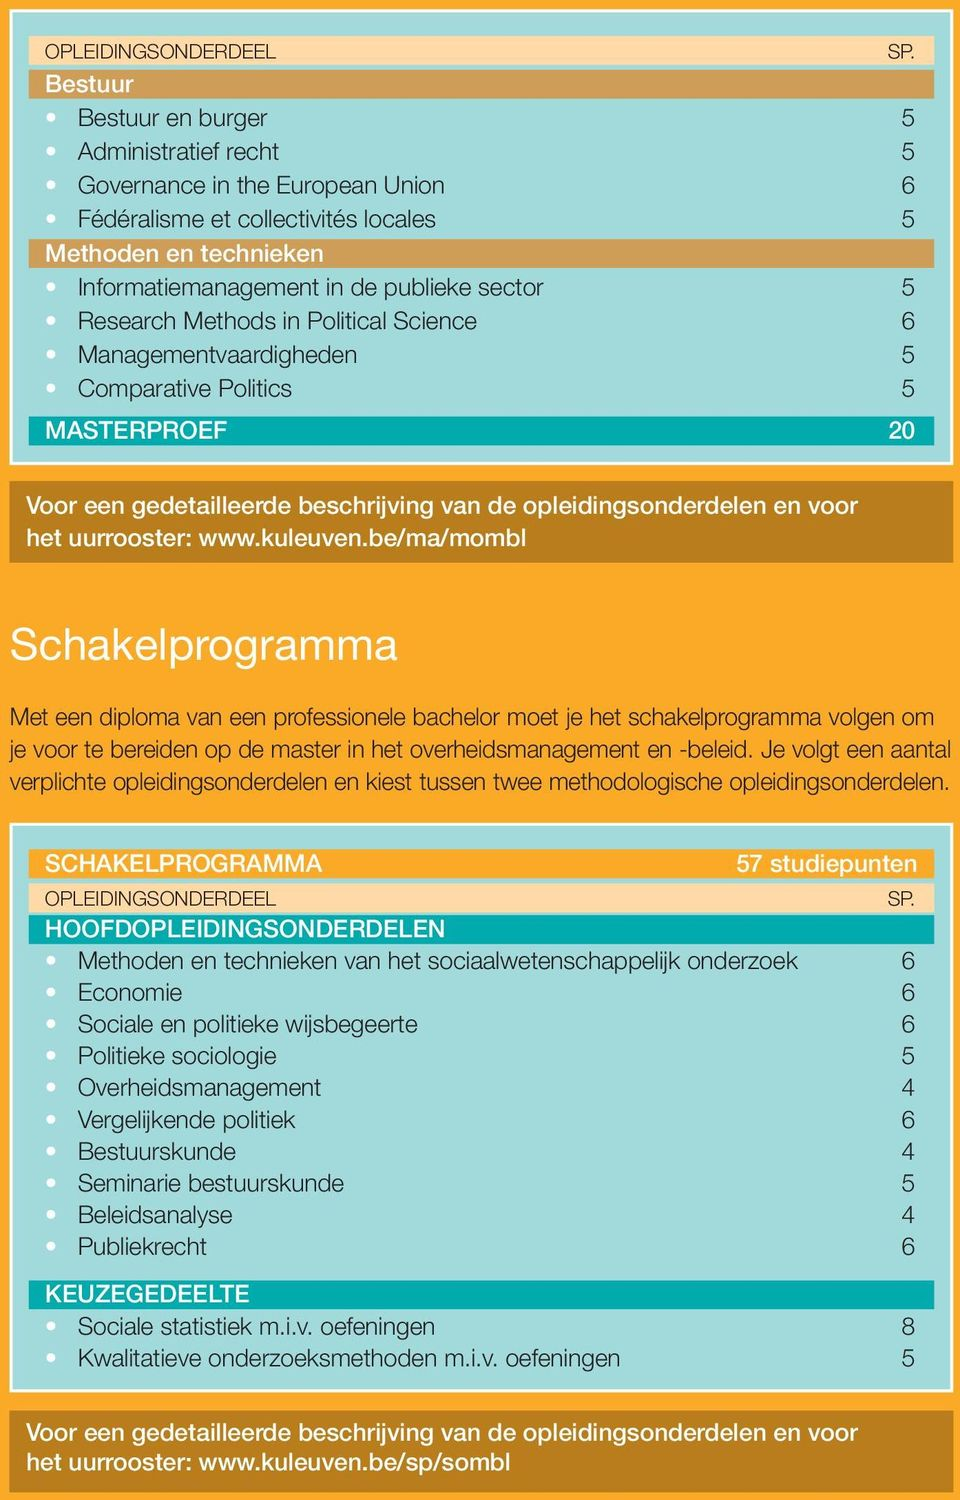 Research Methods in Political Science 6 Managementvaardigheden 5 Comparative Politics 5 MASTERPROEF 20 Voor een gedetailleerde beschrijving van de opleidingsonderdelen en voor het uurrooster: www.